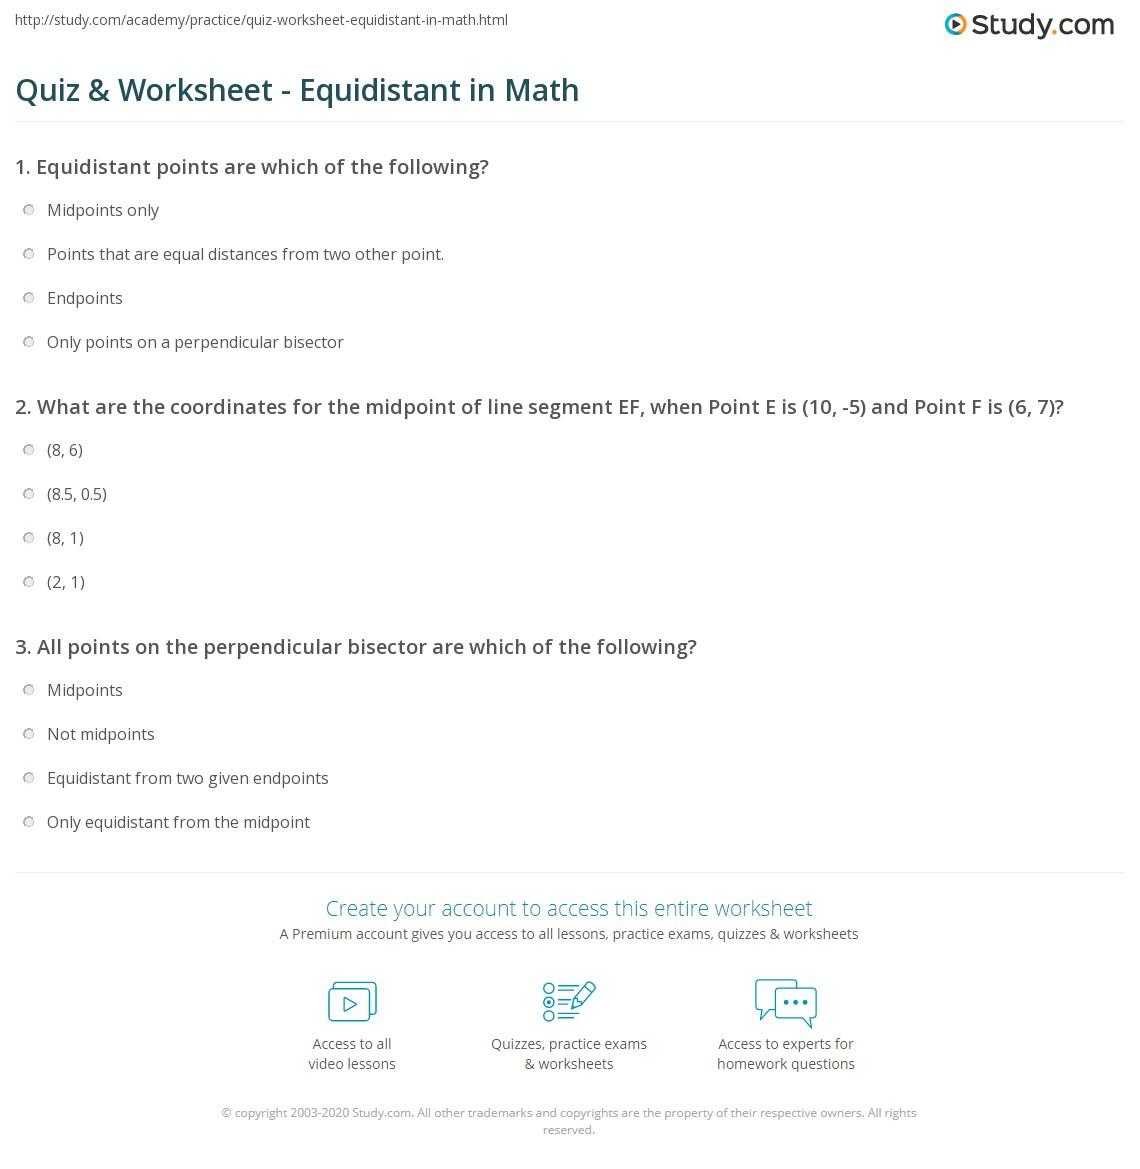 Uncategorized Line Segment Worksheets quiz worksheet equidistant in math study com what are the coordinates for midpoint of line segment ef when point e is 10 5 and f 6 7